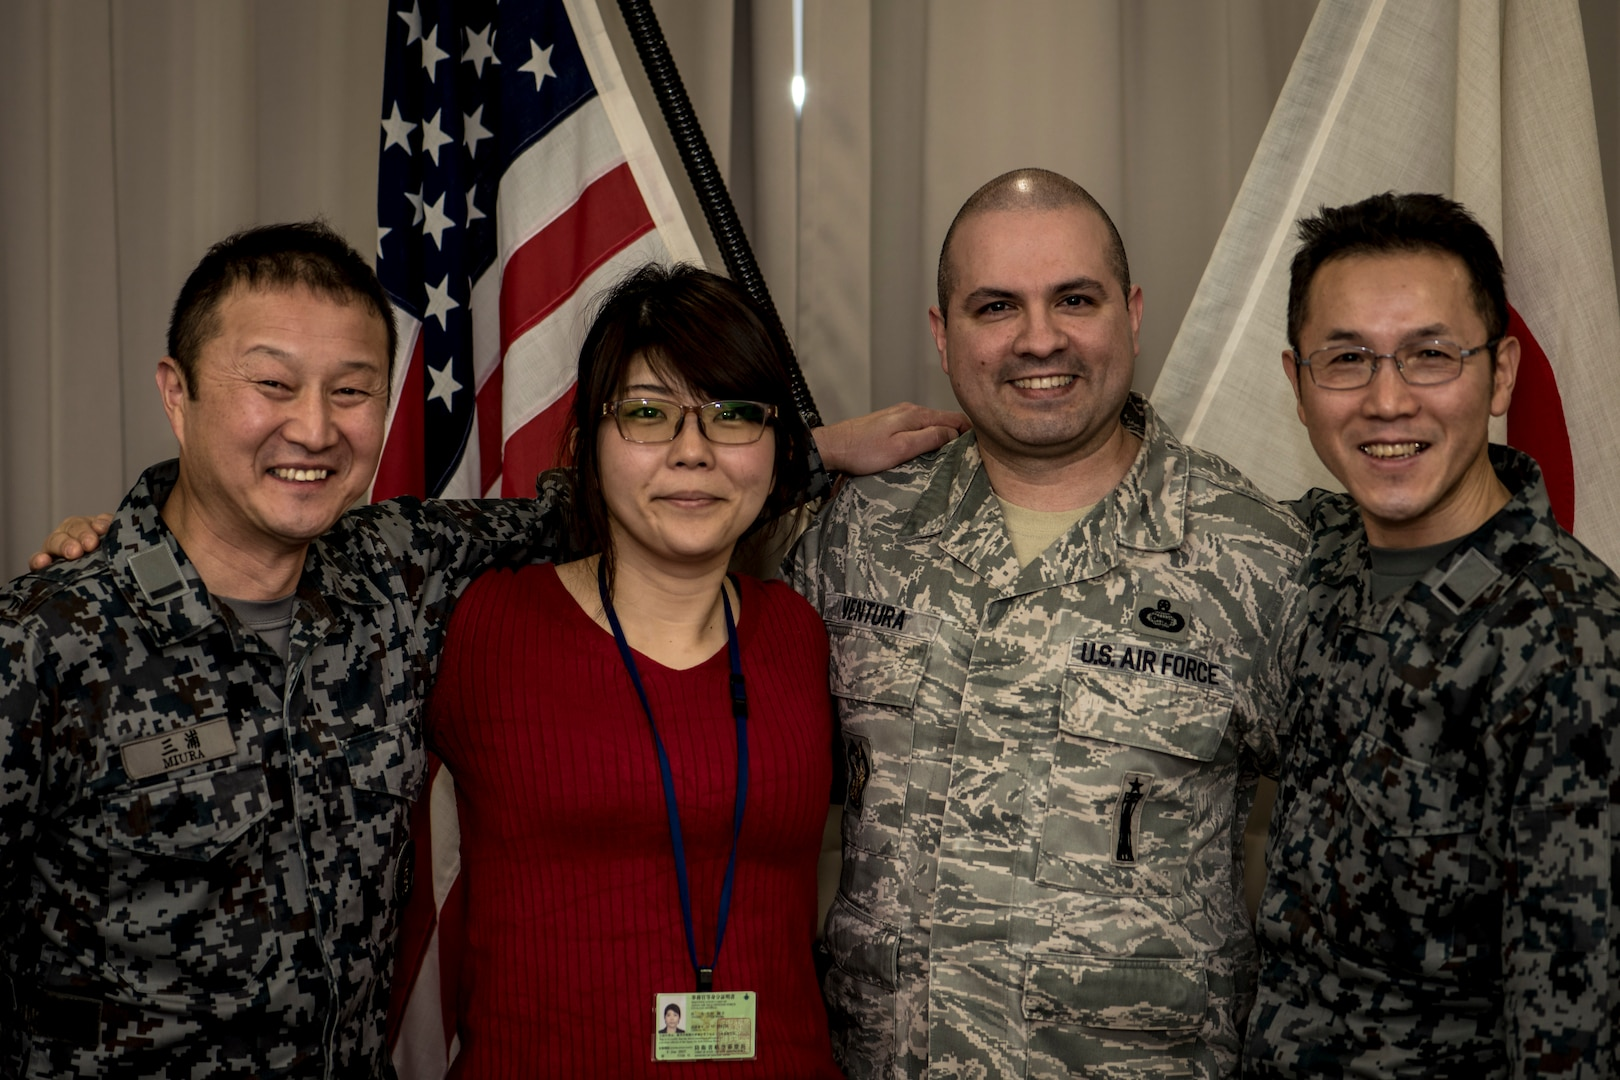 Japan Air Self-Defense Force Warrant Officer Junji Miura, left, the 3rd Air Wing command chief, Noriko Ohtani, center left, a 3rd AW U.S. Relations Section member, U.S. Air Force Master Sgt. Cesar Ventura, center right, a 35th Fighter Wing inspector general vertical inspections planner, and JASDF Warrant Officer Tsuyoshi Endo, right, the former 6th Air Defense Missile Group chief and Senior Noncommissioned Officer Association president, pose for a photo in the 3rd AW headquarters at Misawa Air Base, Japan, Feb. 14, 2018. In the past four years, Ventura worked with Miura, Endo and Ohtani on numerous bilateral events bringing U.S. and Japan servicemembers closer as allies and friends. Ventura attributes his success to his Hispanic upbringing and seeks new adventures every day where he can learn something new about another's culture. (U.S. Air Force photo by Tech. Sgt. Benjamin W. Stratton)